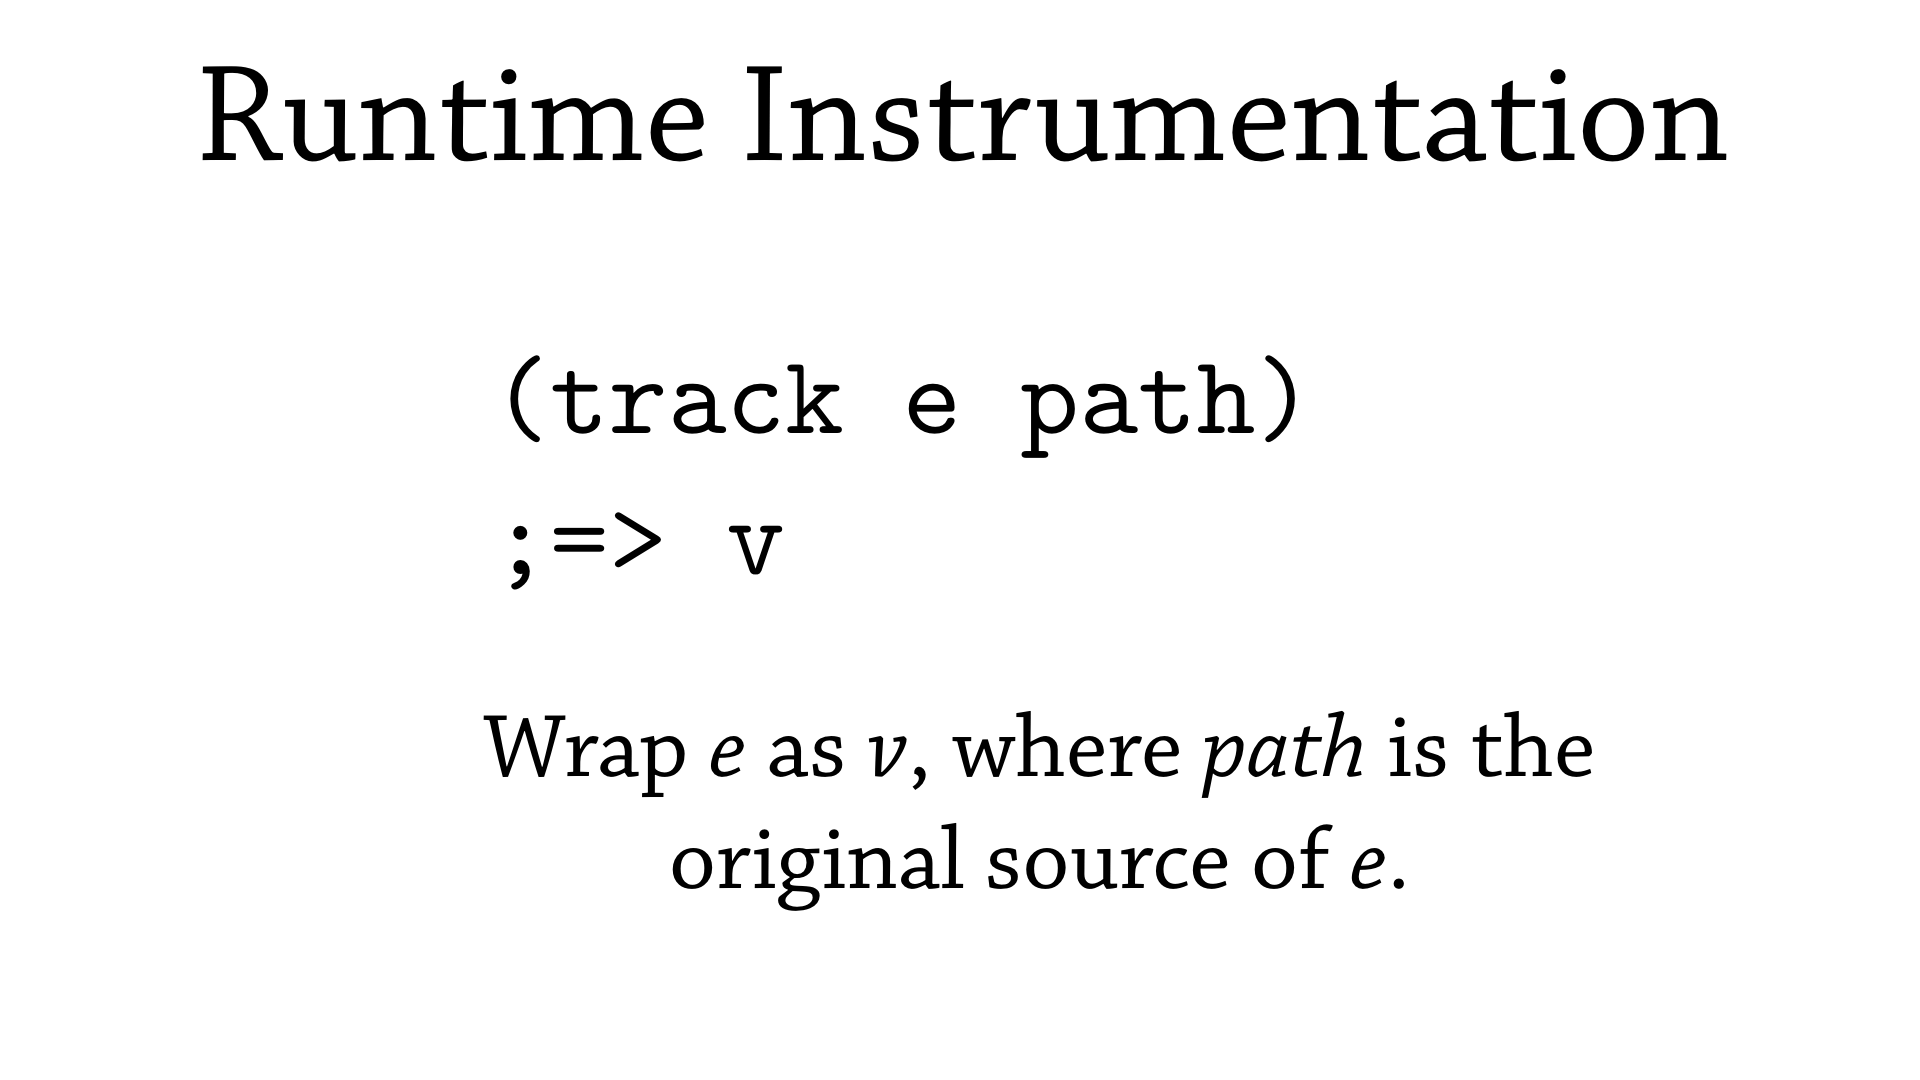 Specification of track